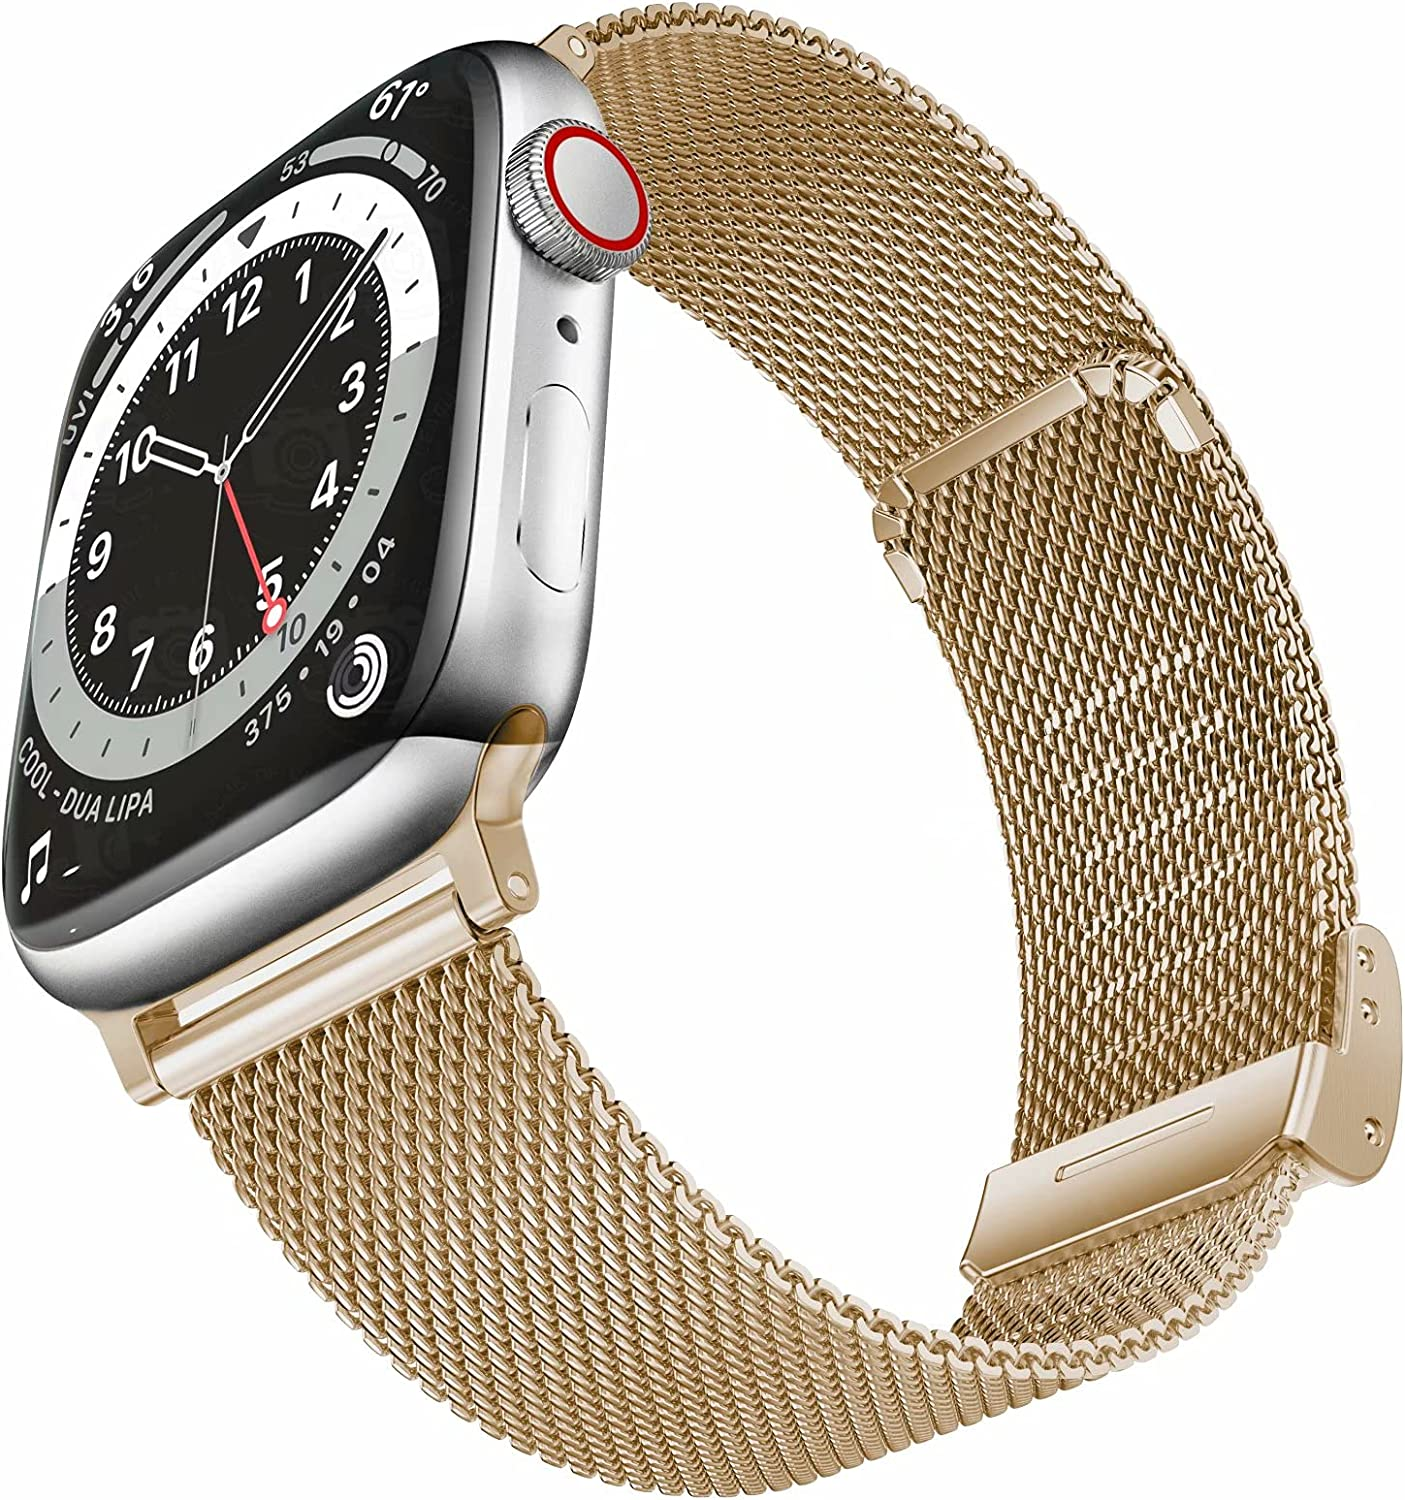 Geoumy Bands Compatible with Apple Watch Band 42mm 44mm, Stainless Steel Milanese Mesh Loop Replacement Men Women Strap for iWatch Series SE/6/5/4/3/2/1,Light Gold